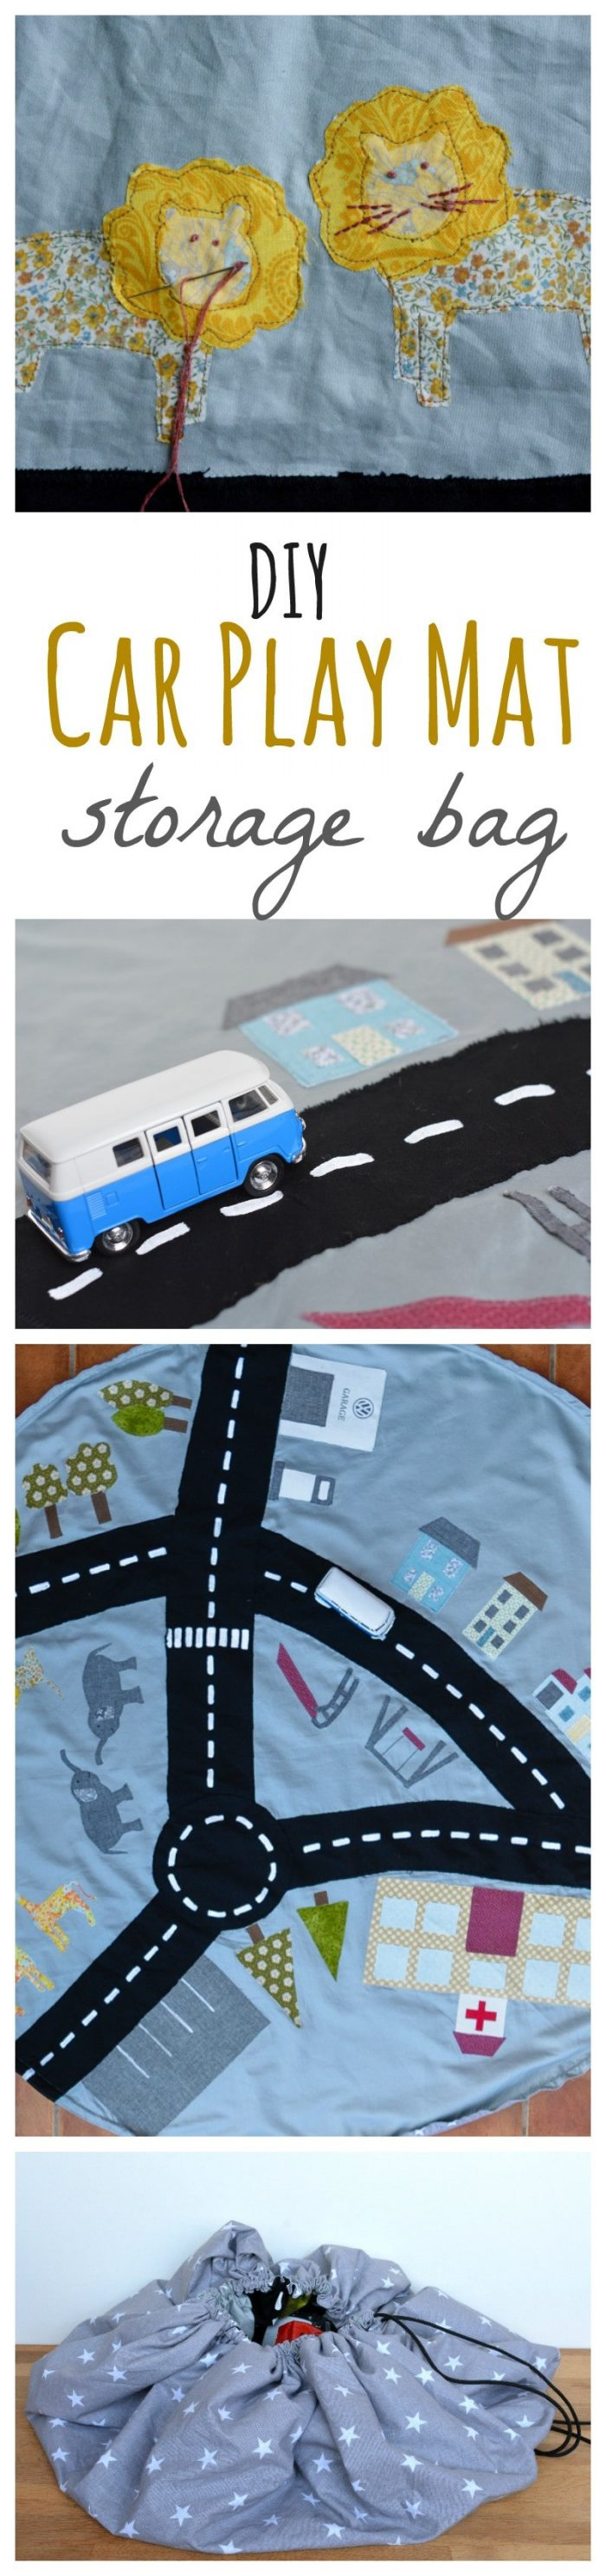 DIY drawstring car play mat (post sponsored by Volkswagen) 2